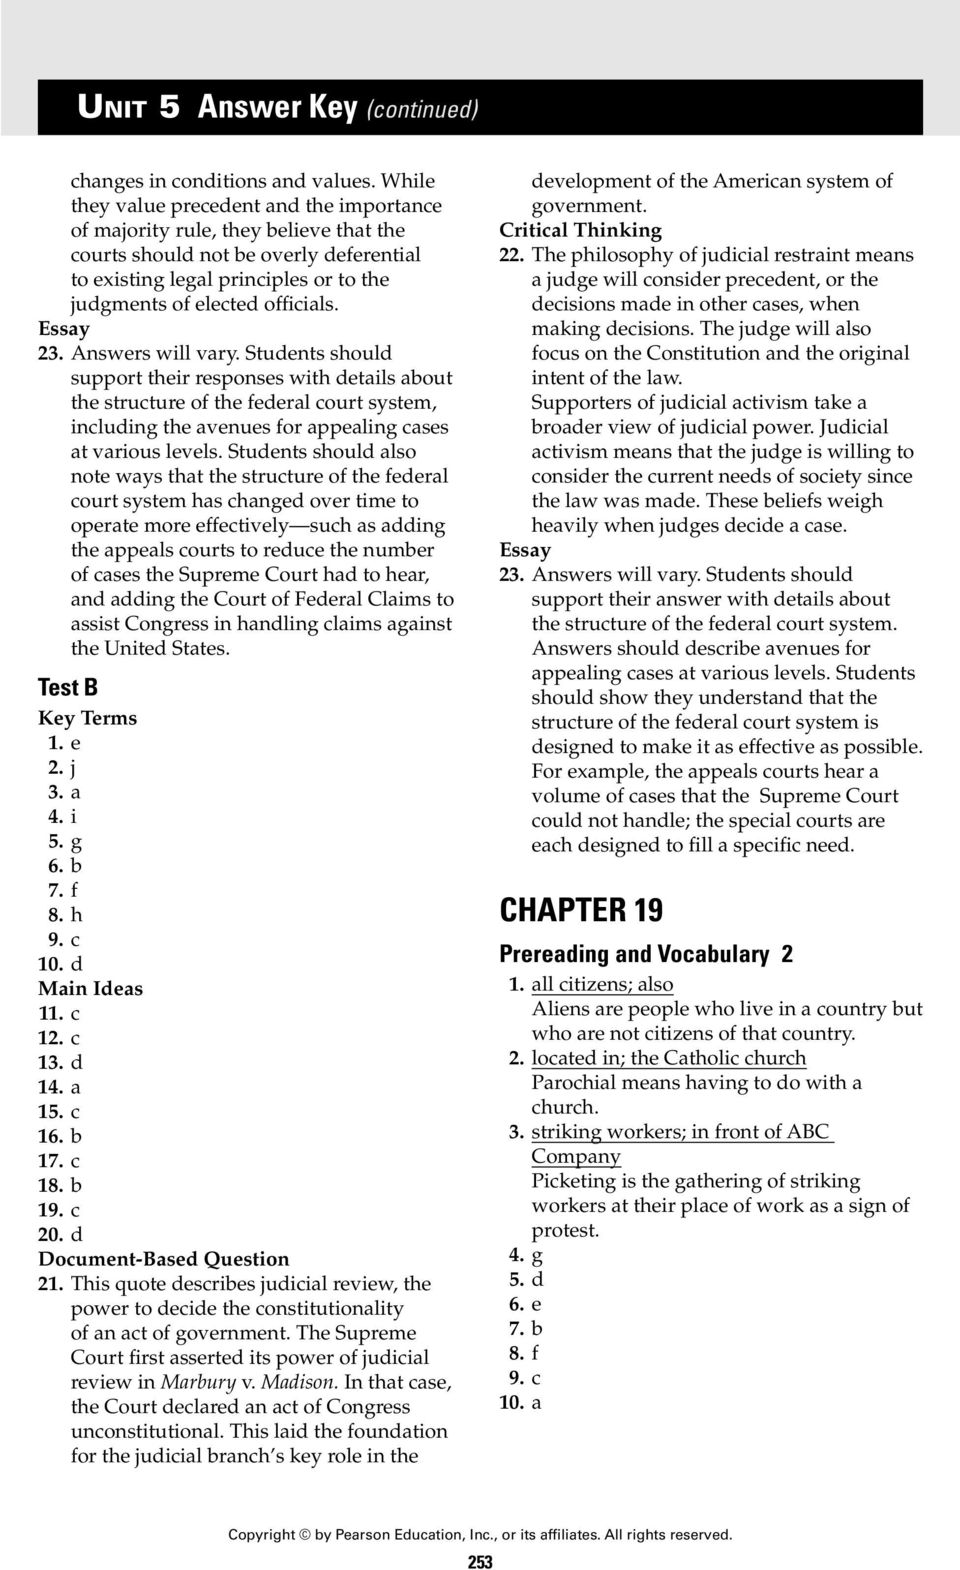 UNIT 5 Answer Key CHAPTER 18  CHAPTER 18 Section 1 - PDF